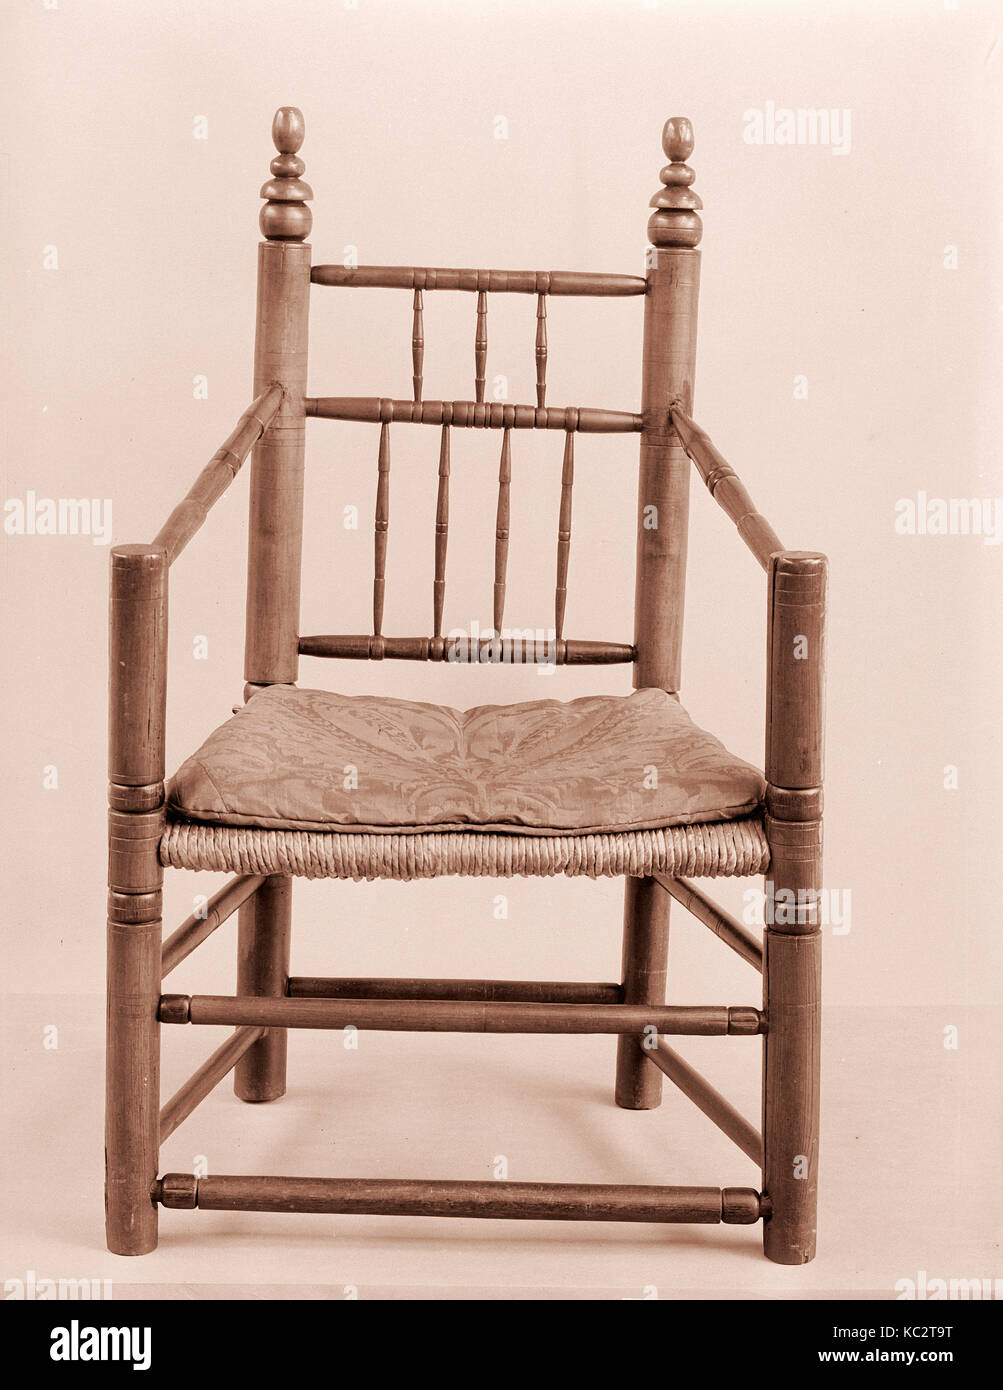 Fauteuil tourné, 1650-1700, Made in United States, American, érable, frêne, 40 x 25 x 17 1/2 in. (101,6 x 63,5 x 44,5 cm Banque D'Images